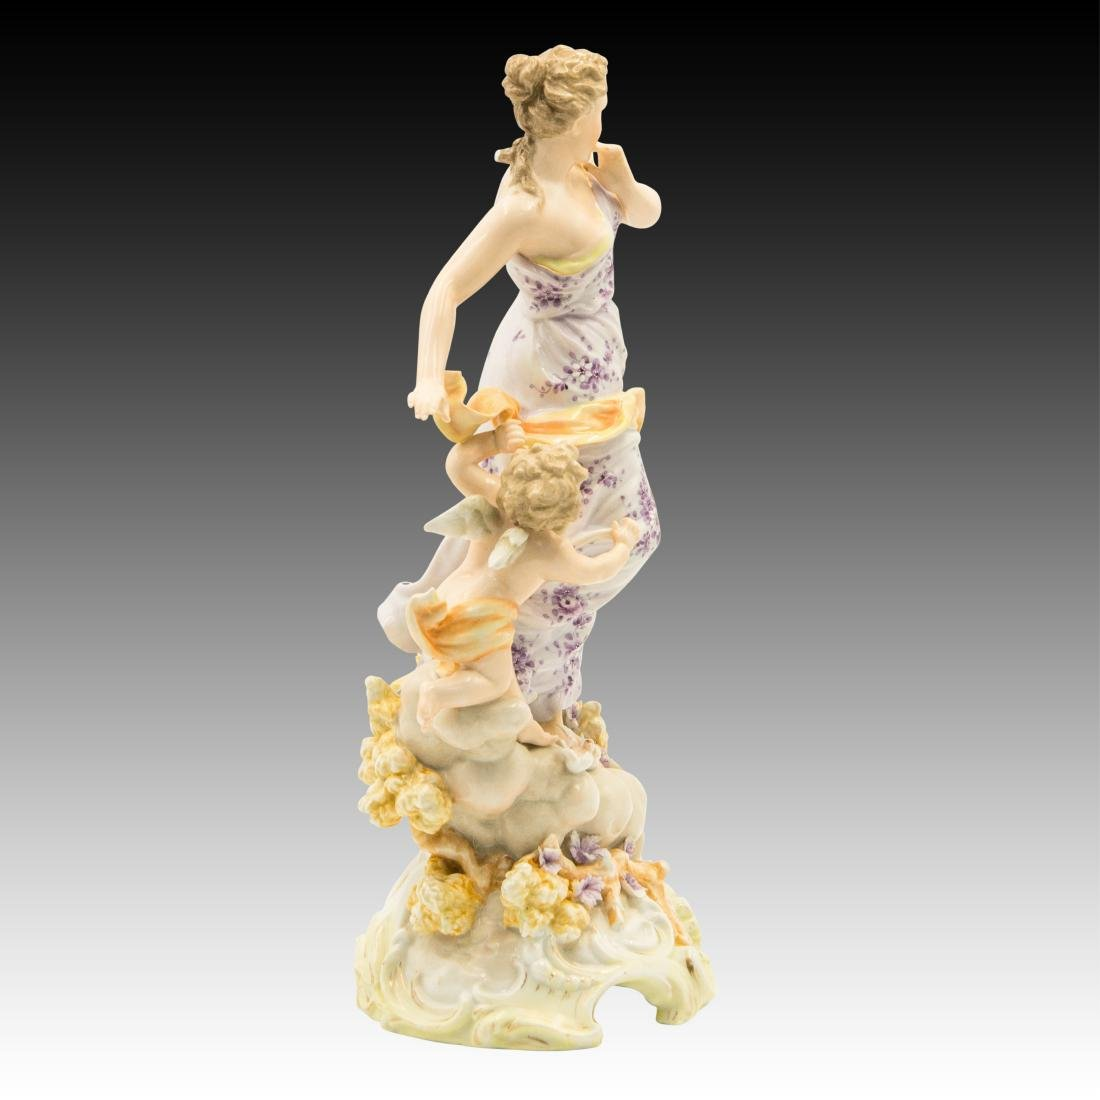 Young Woman on a Cloud with a Cherub Figurine - 4